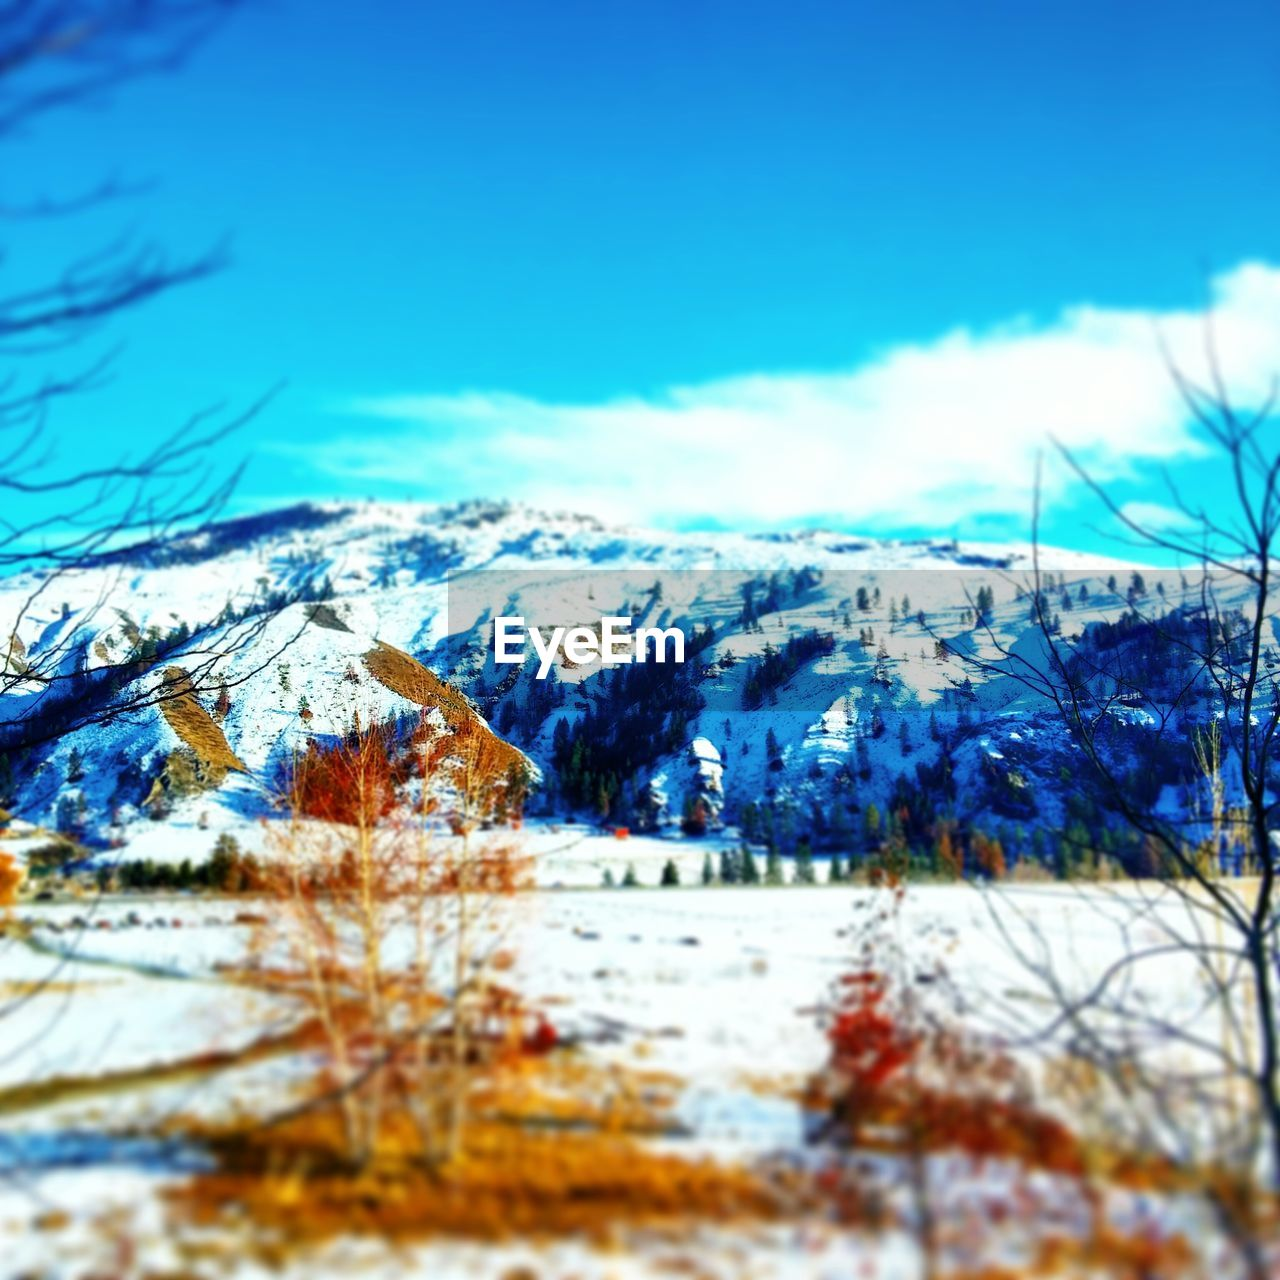 snow, winter, cold temperature, nature, beauty in nature, sky, blue, scenics, no people, tree, outdoors, tranquil scene, mountain, day, tranquility, landscape, travel destinations, building exterior, bare tree, architecture, tilt-shift